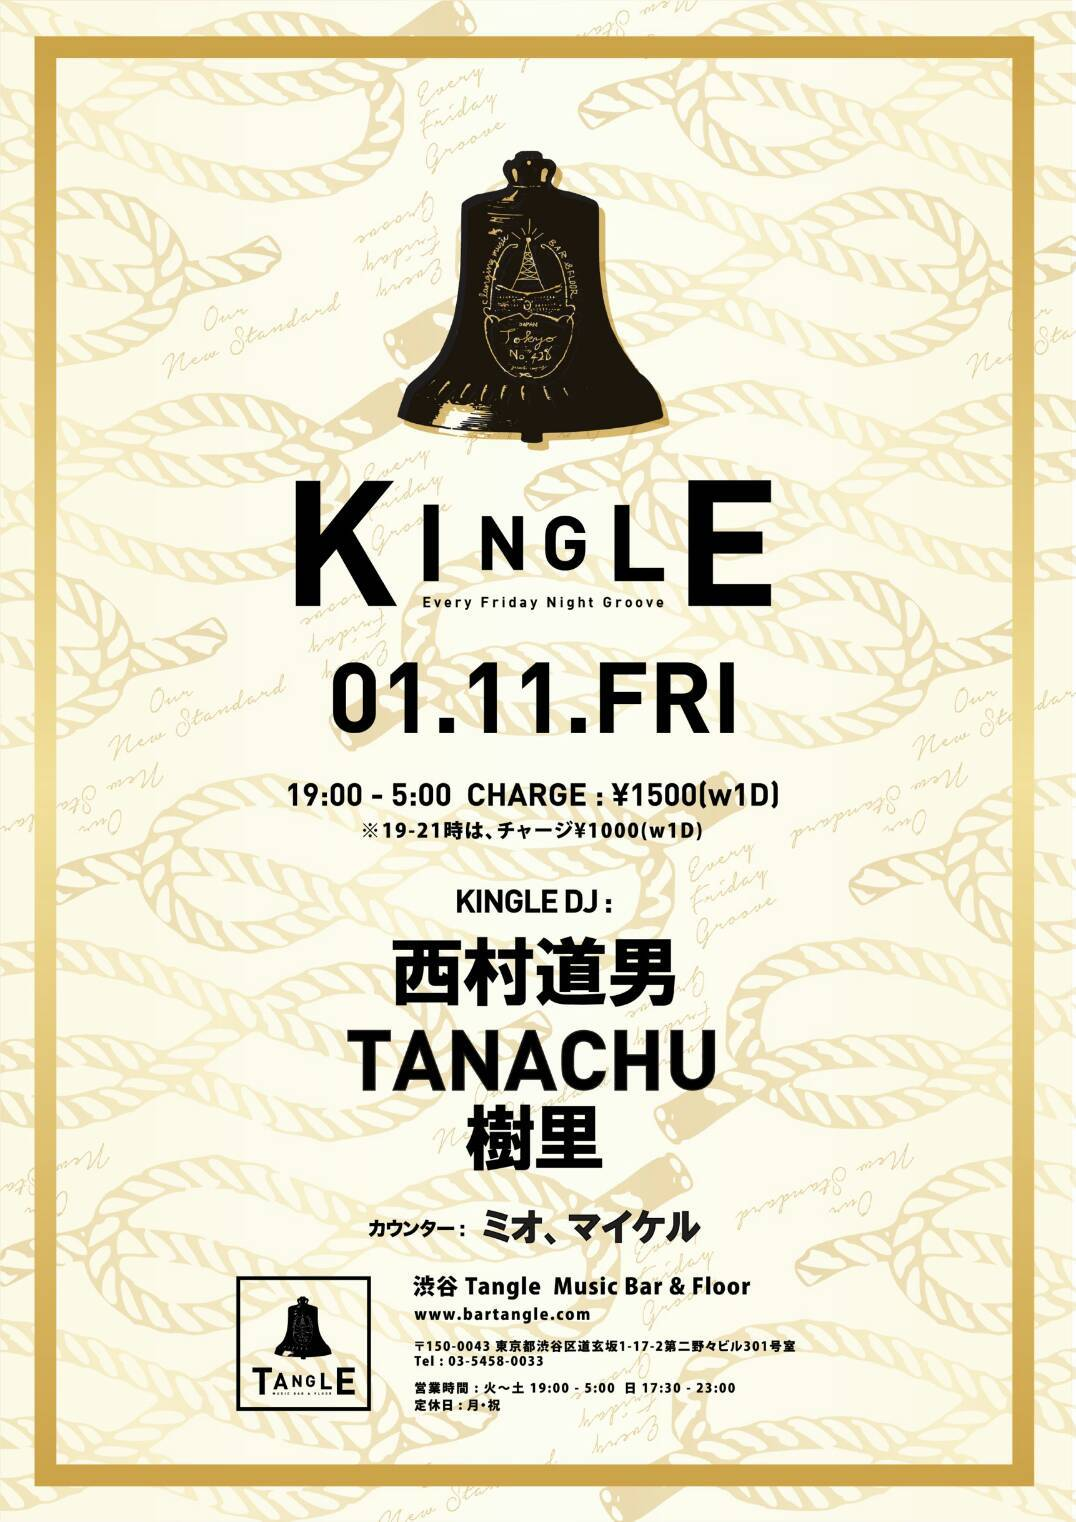 1/11(FRI) 「KINGLE」 @ 渋谷 Tangle_e0153779_10553430.jpeg